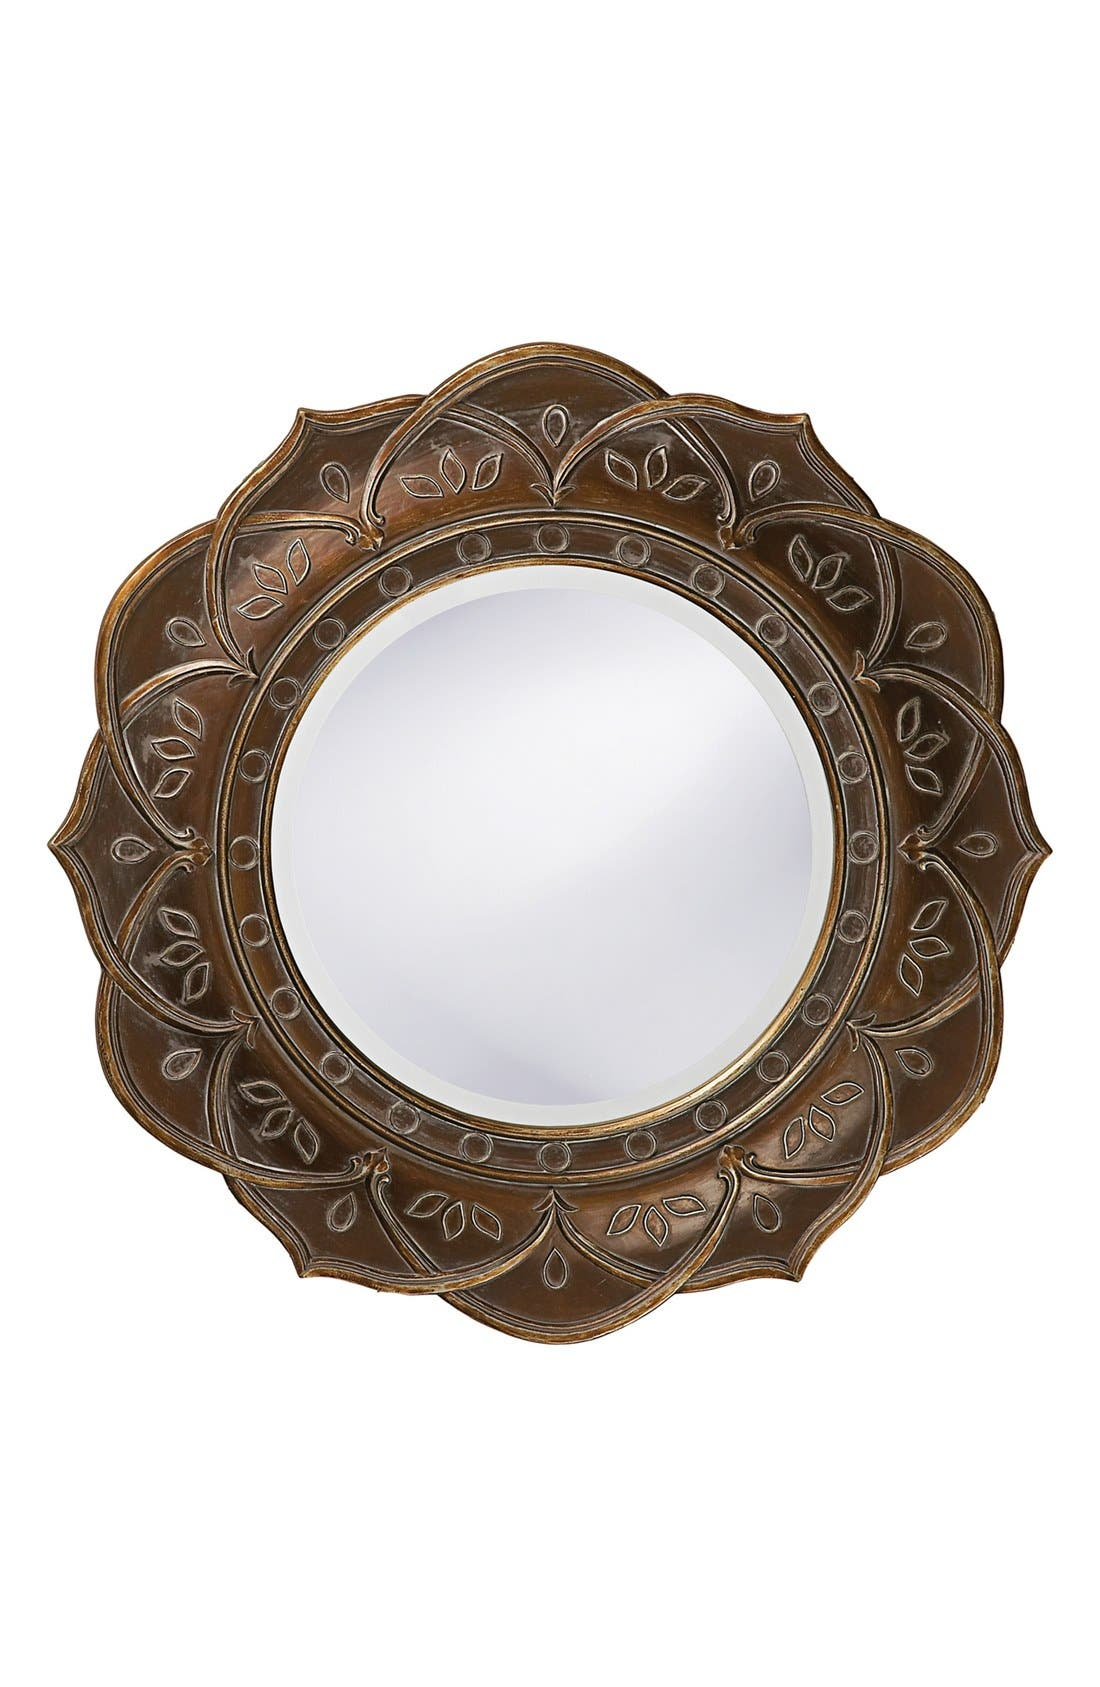 Alternate Image 1 Selected - Howard Elliott Collection 'Erica' Mirror